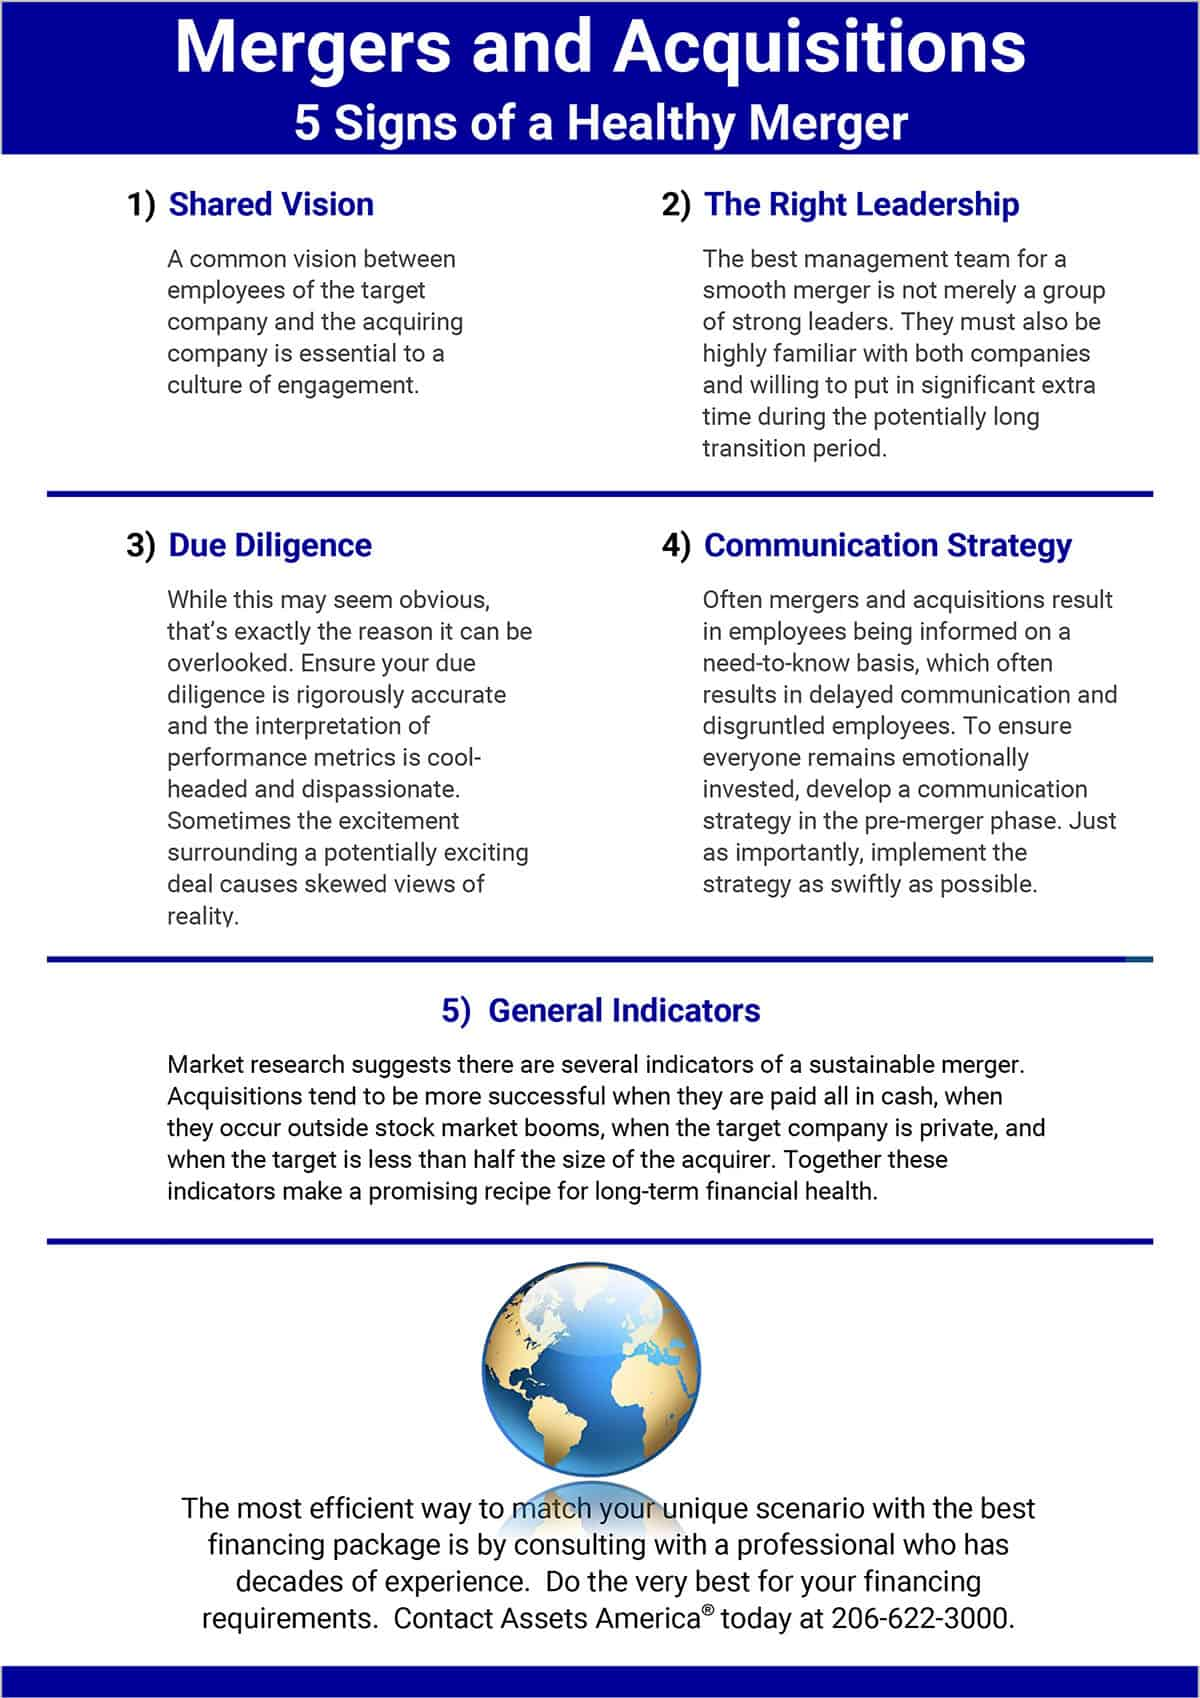 Infographic: 5 Signs of a Healthy Merger